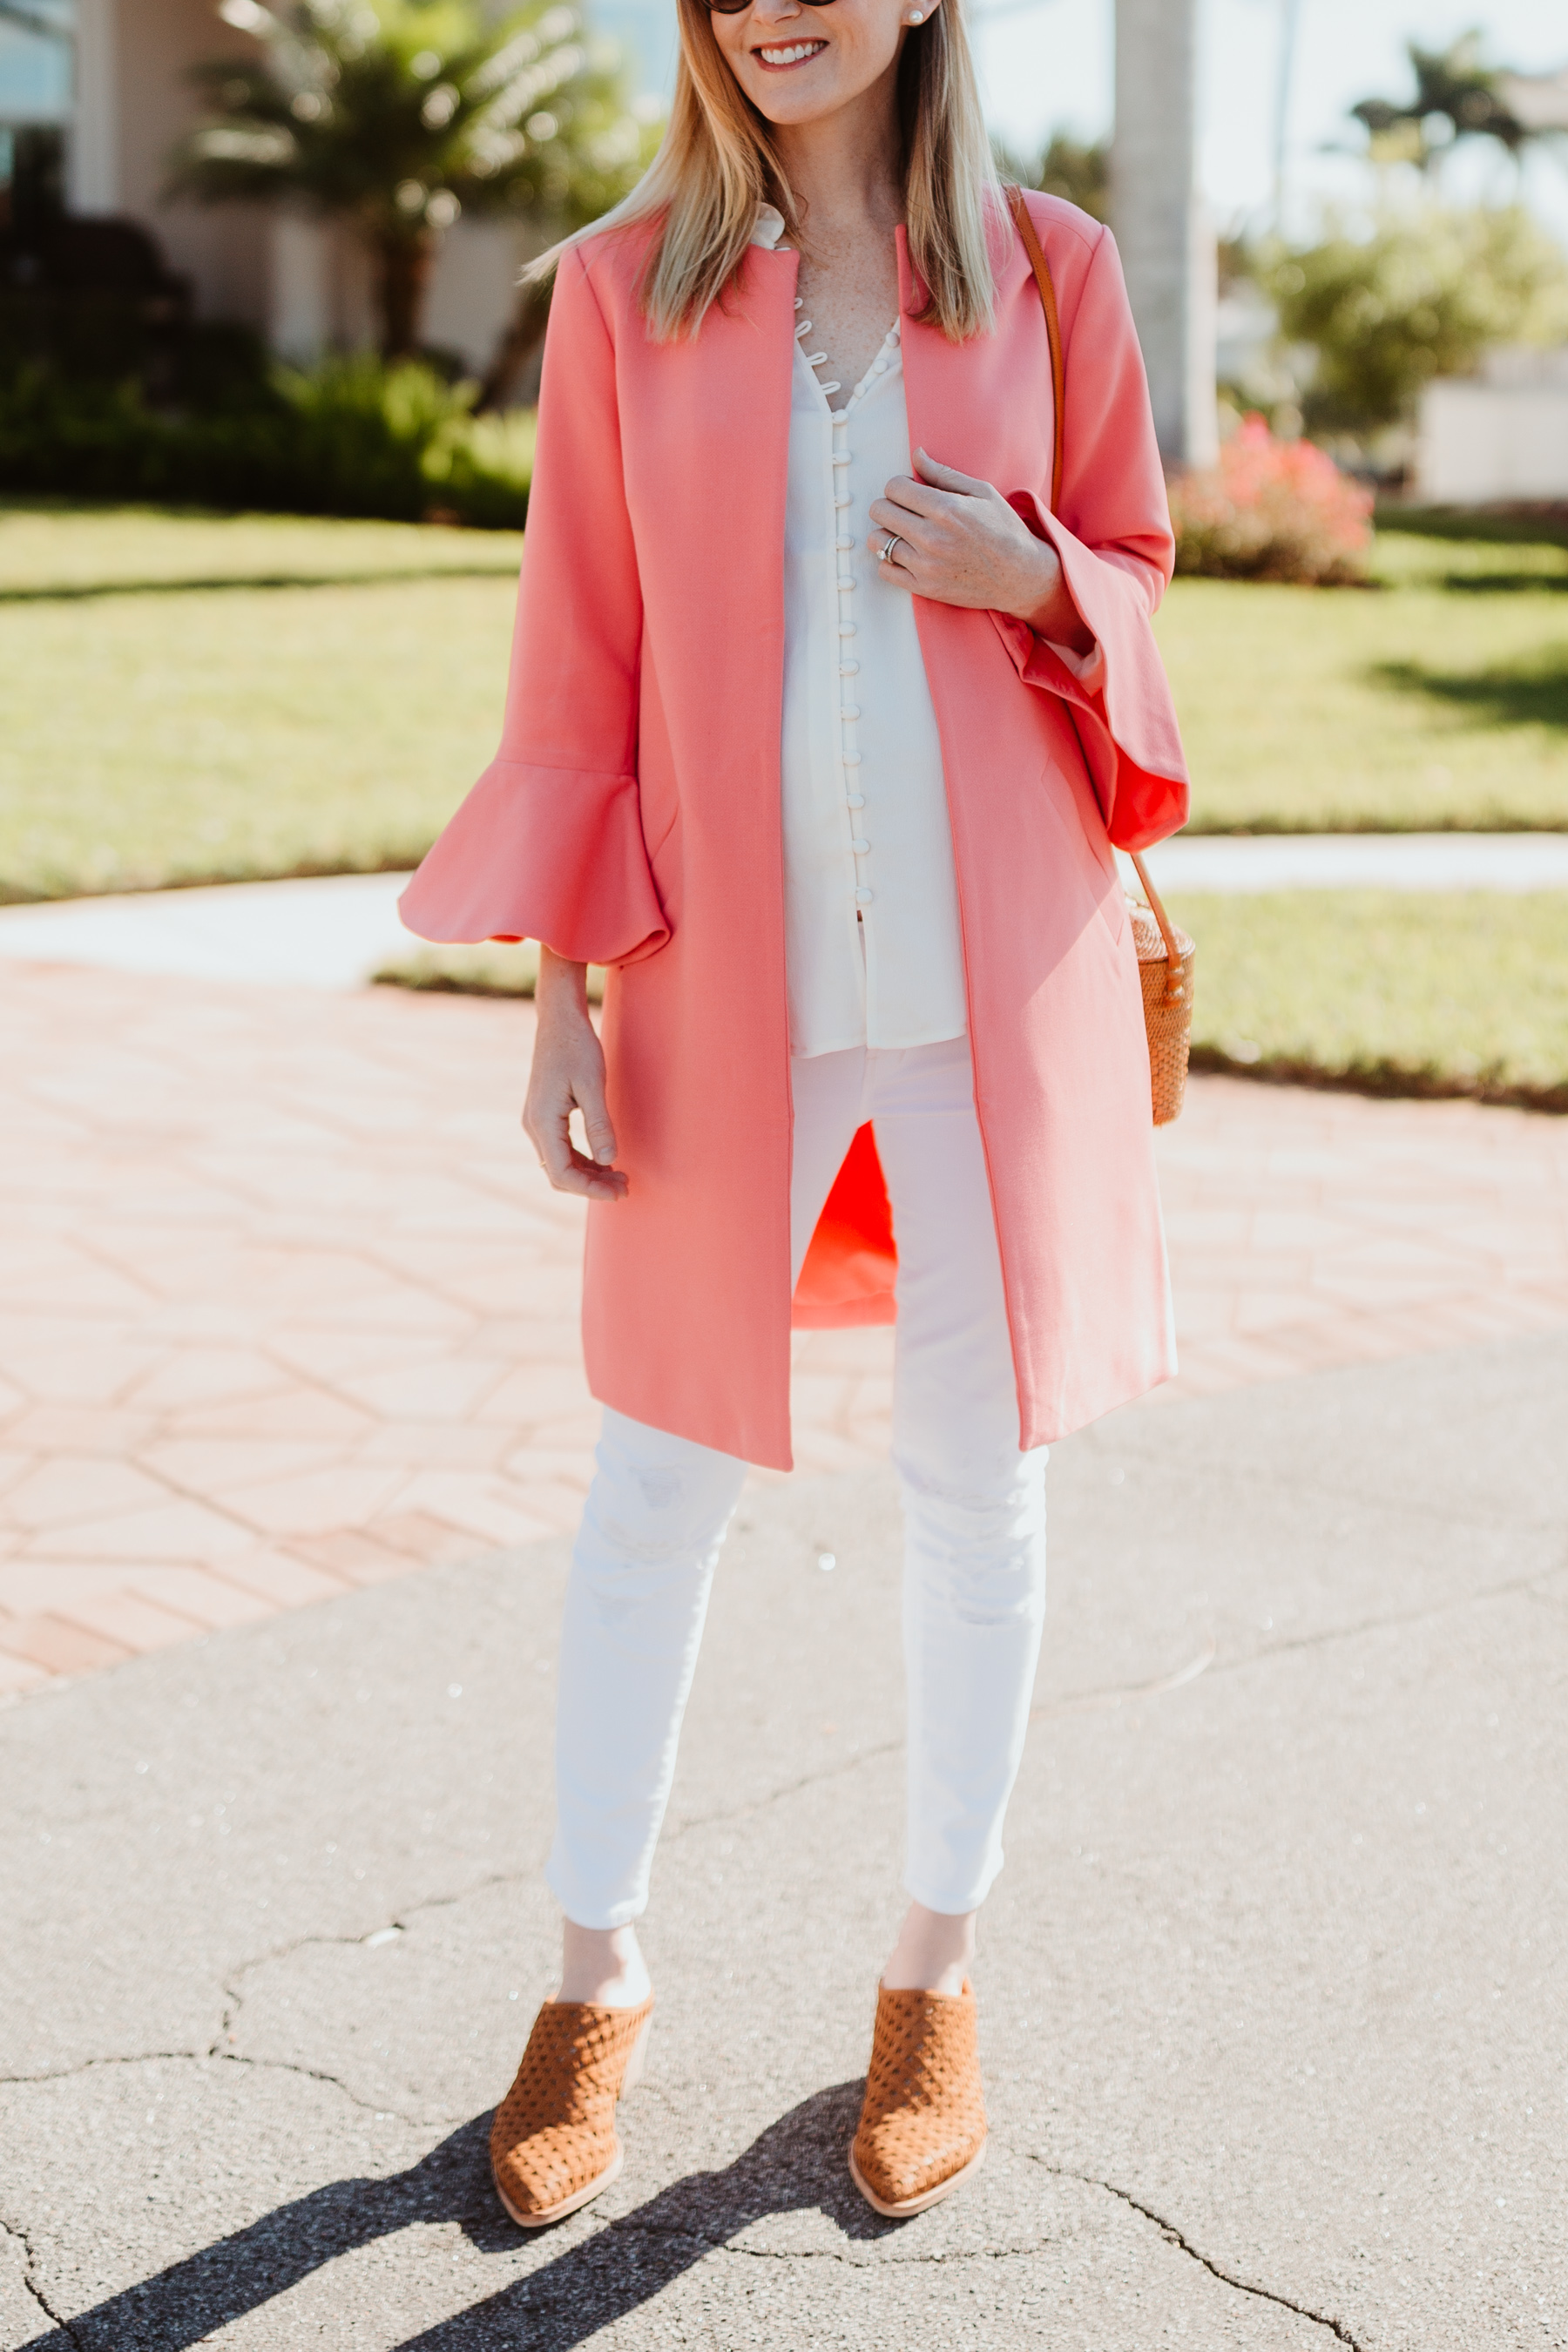 Kelly's Outfit: Pink Double Weave Flutter Sleeve Coat / Ruffled Button Blouse /Dolce Vita Sayer Mules / Newer Woven Crossbody Bag/ Maternity Jeans